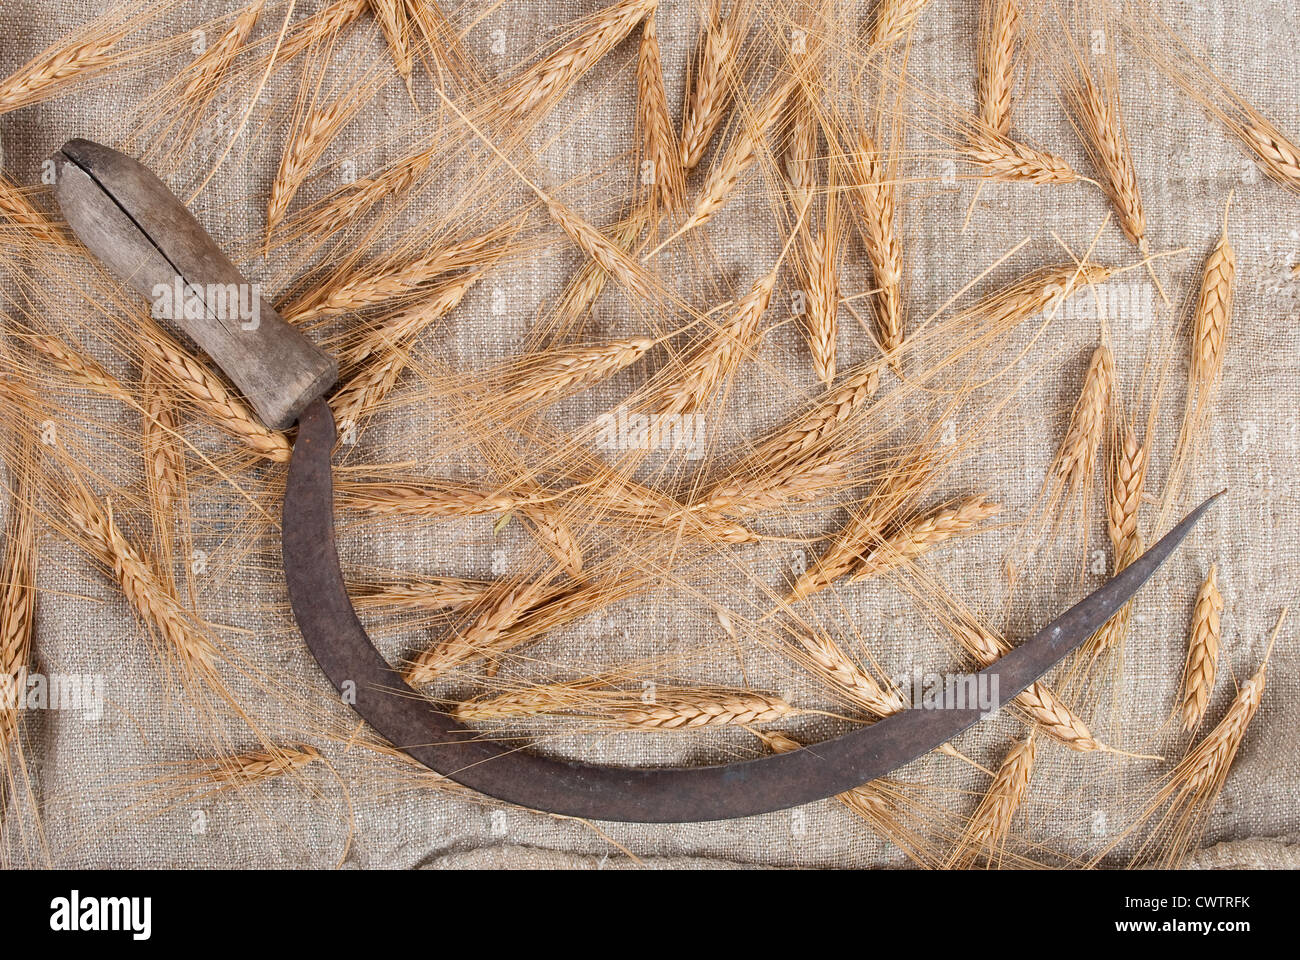 Sickle and ears of wheat - Stock Image